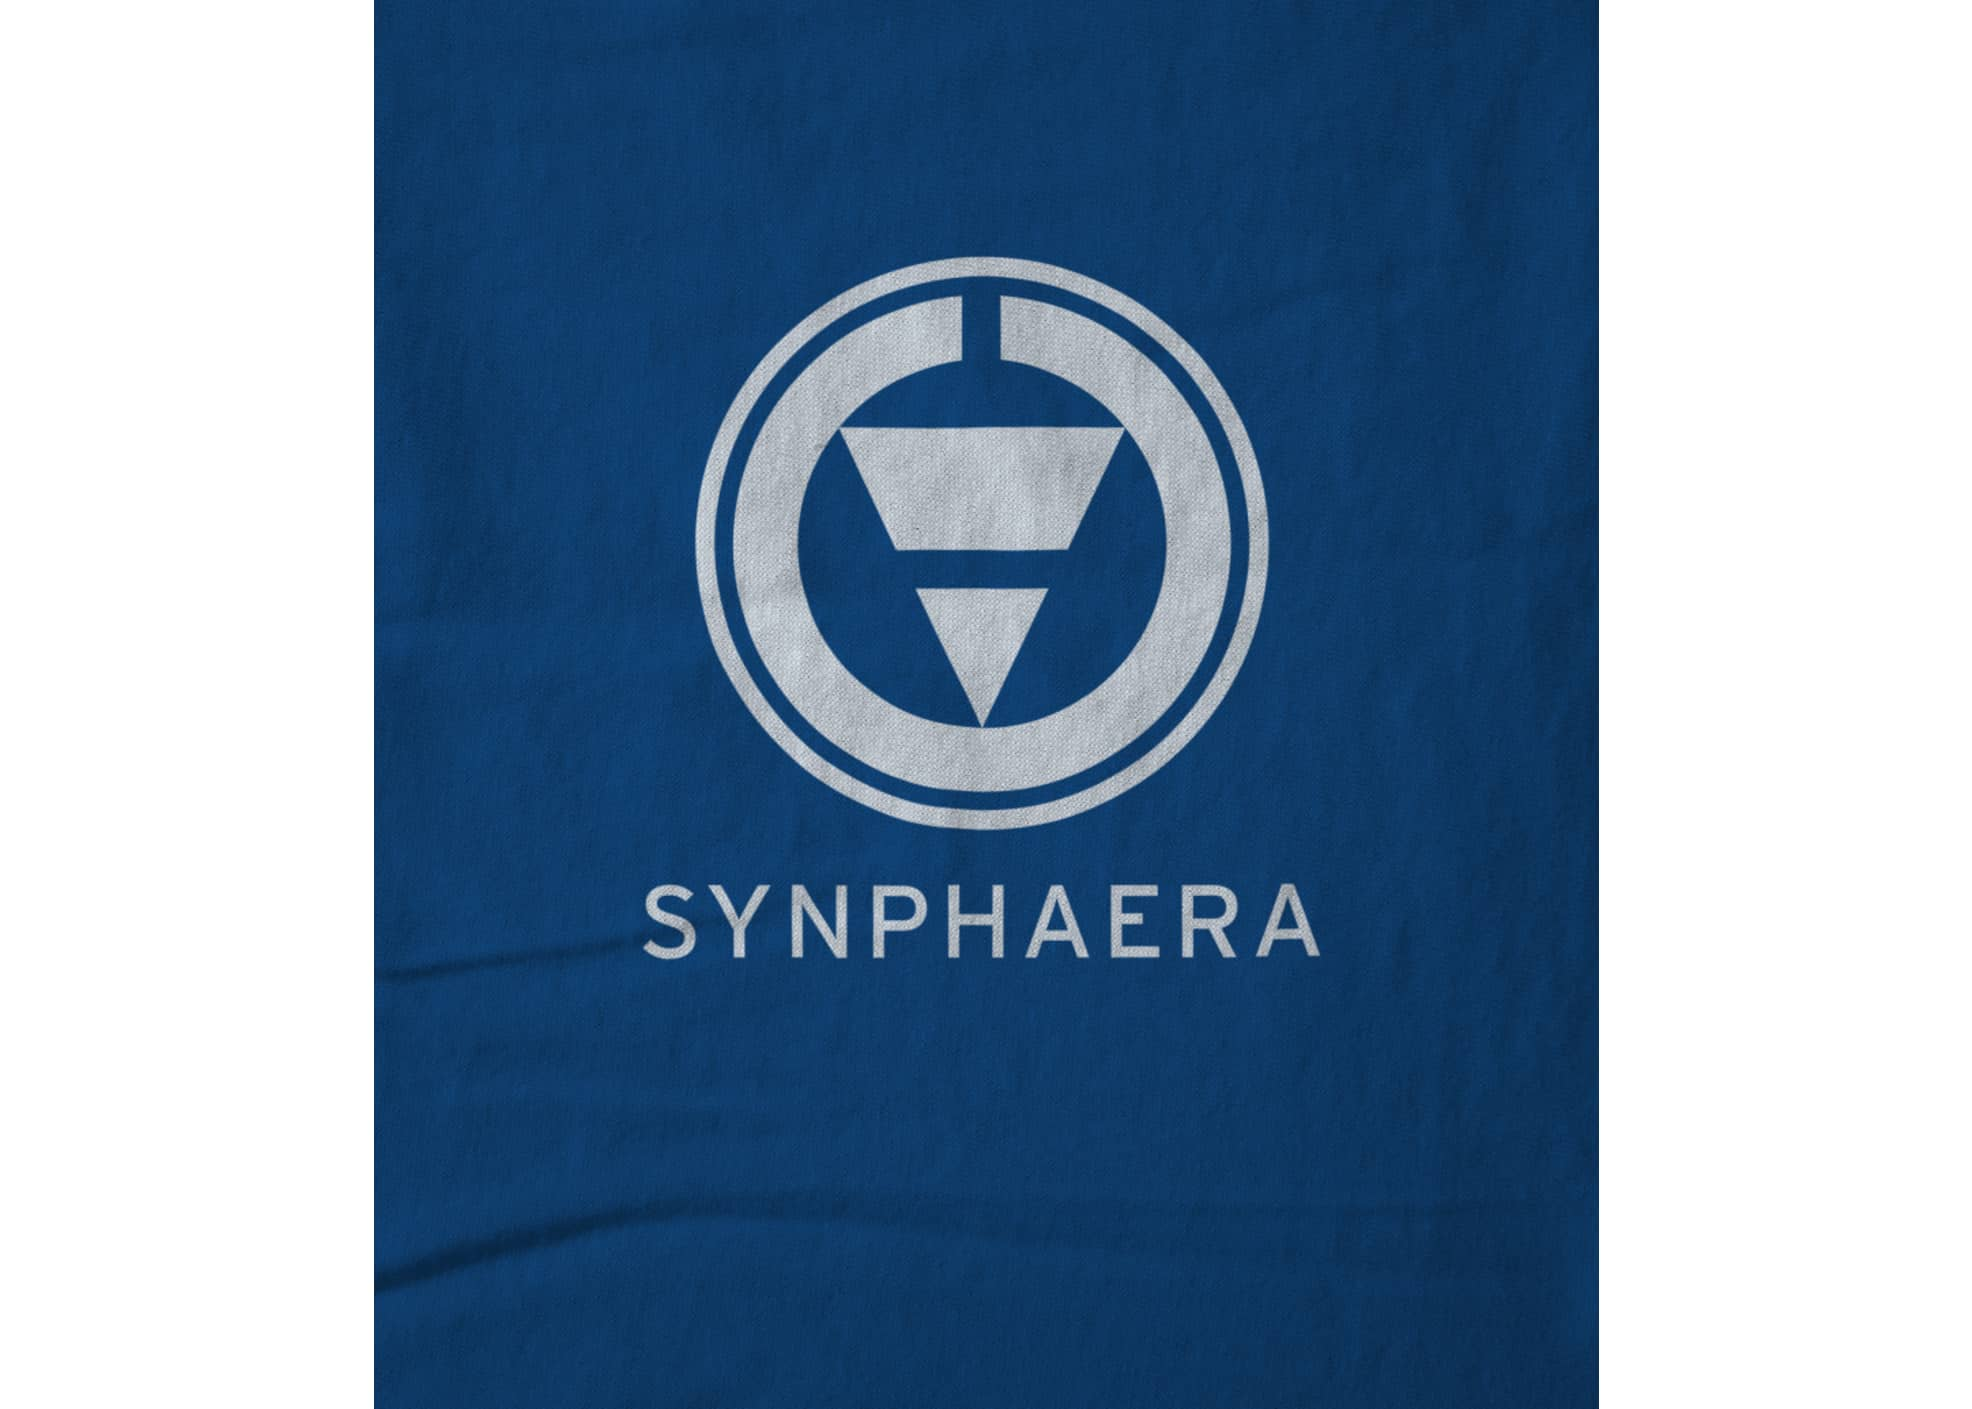 Synphaera records official synphaera